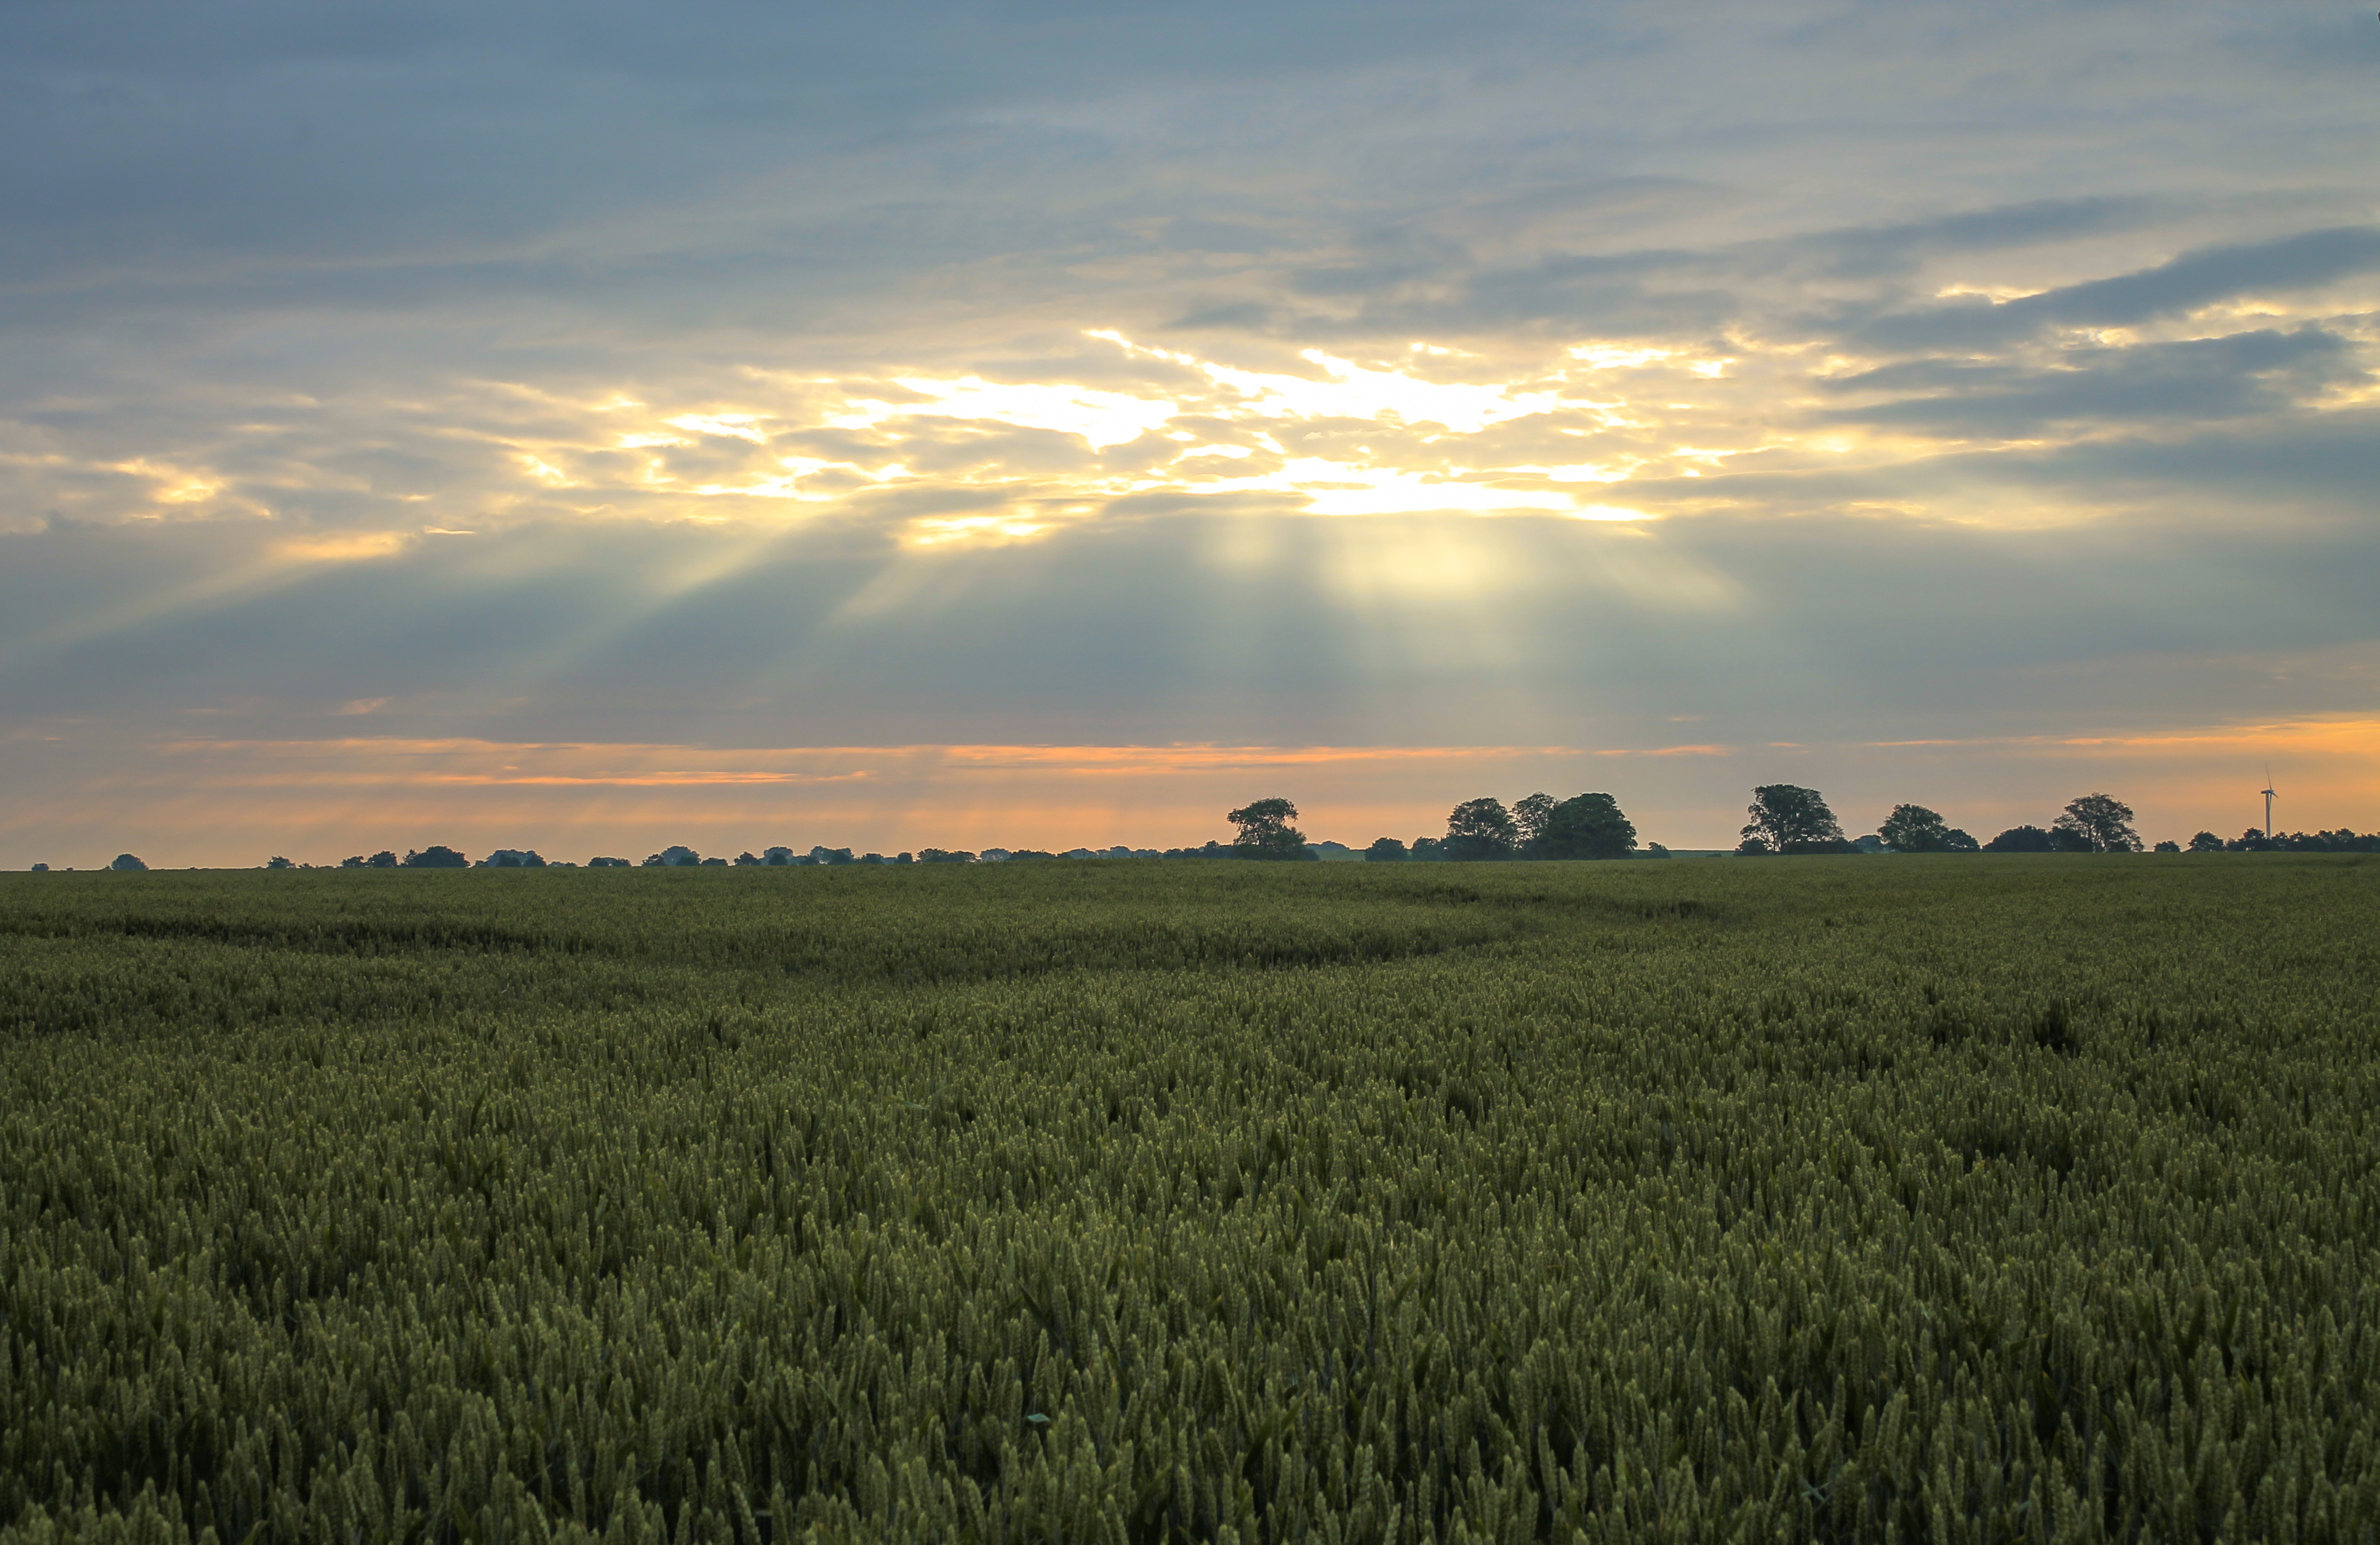 Sun shining through the clouds over a green wheat field photo